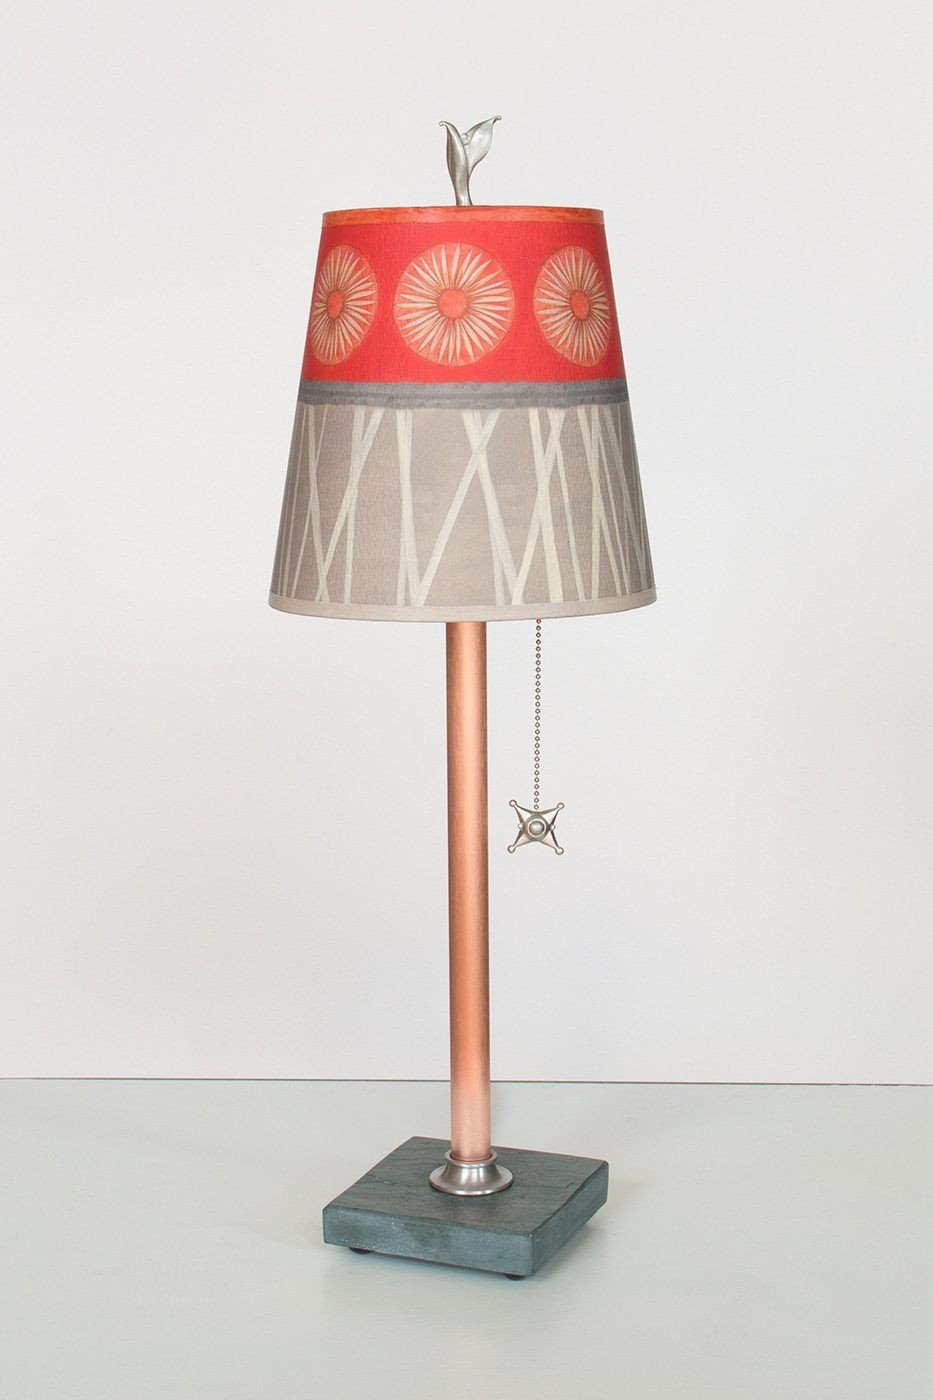 Copper Table Lamp on Vermont Slate Base with Small Drum Shade in Tang Lit